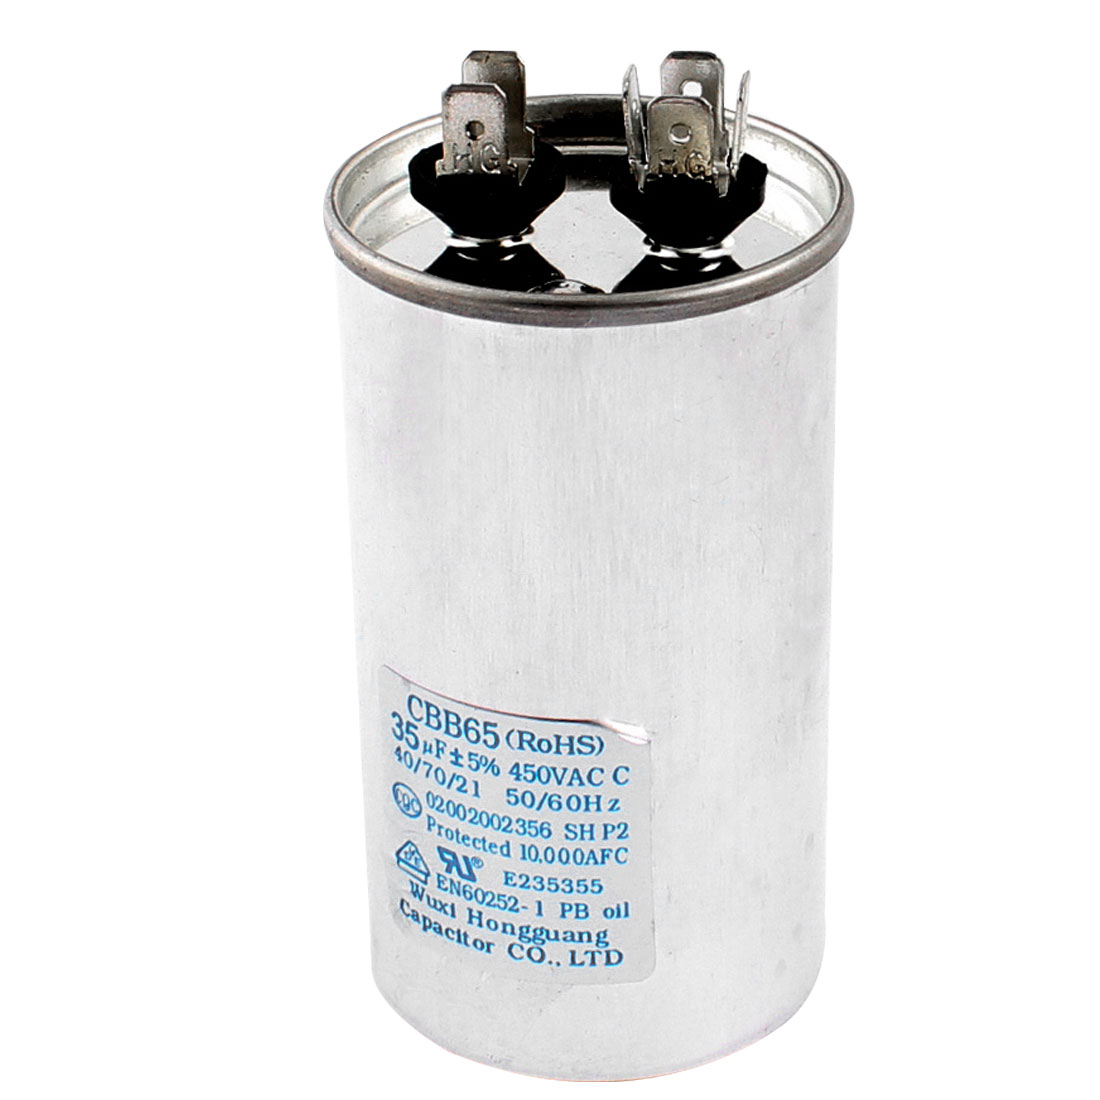 Air Conditioner AC 450V 35uF 5% 50/60Hz Non Polar Polypropylene Film Motor Capacitor CBB65